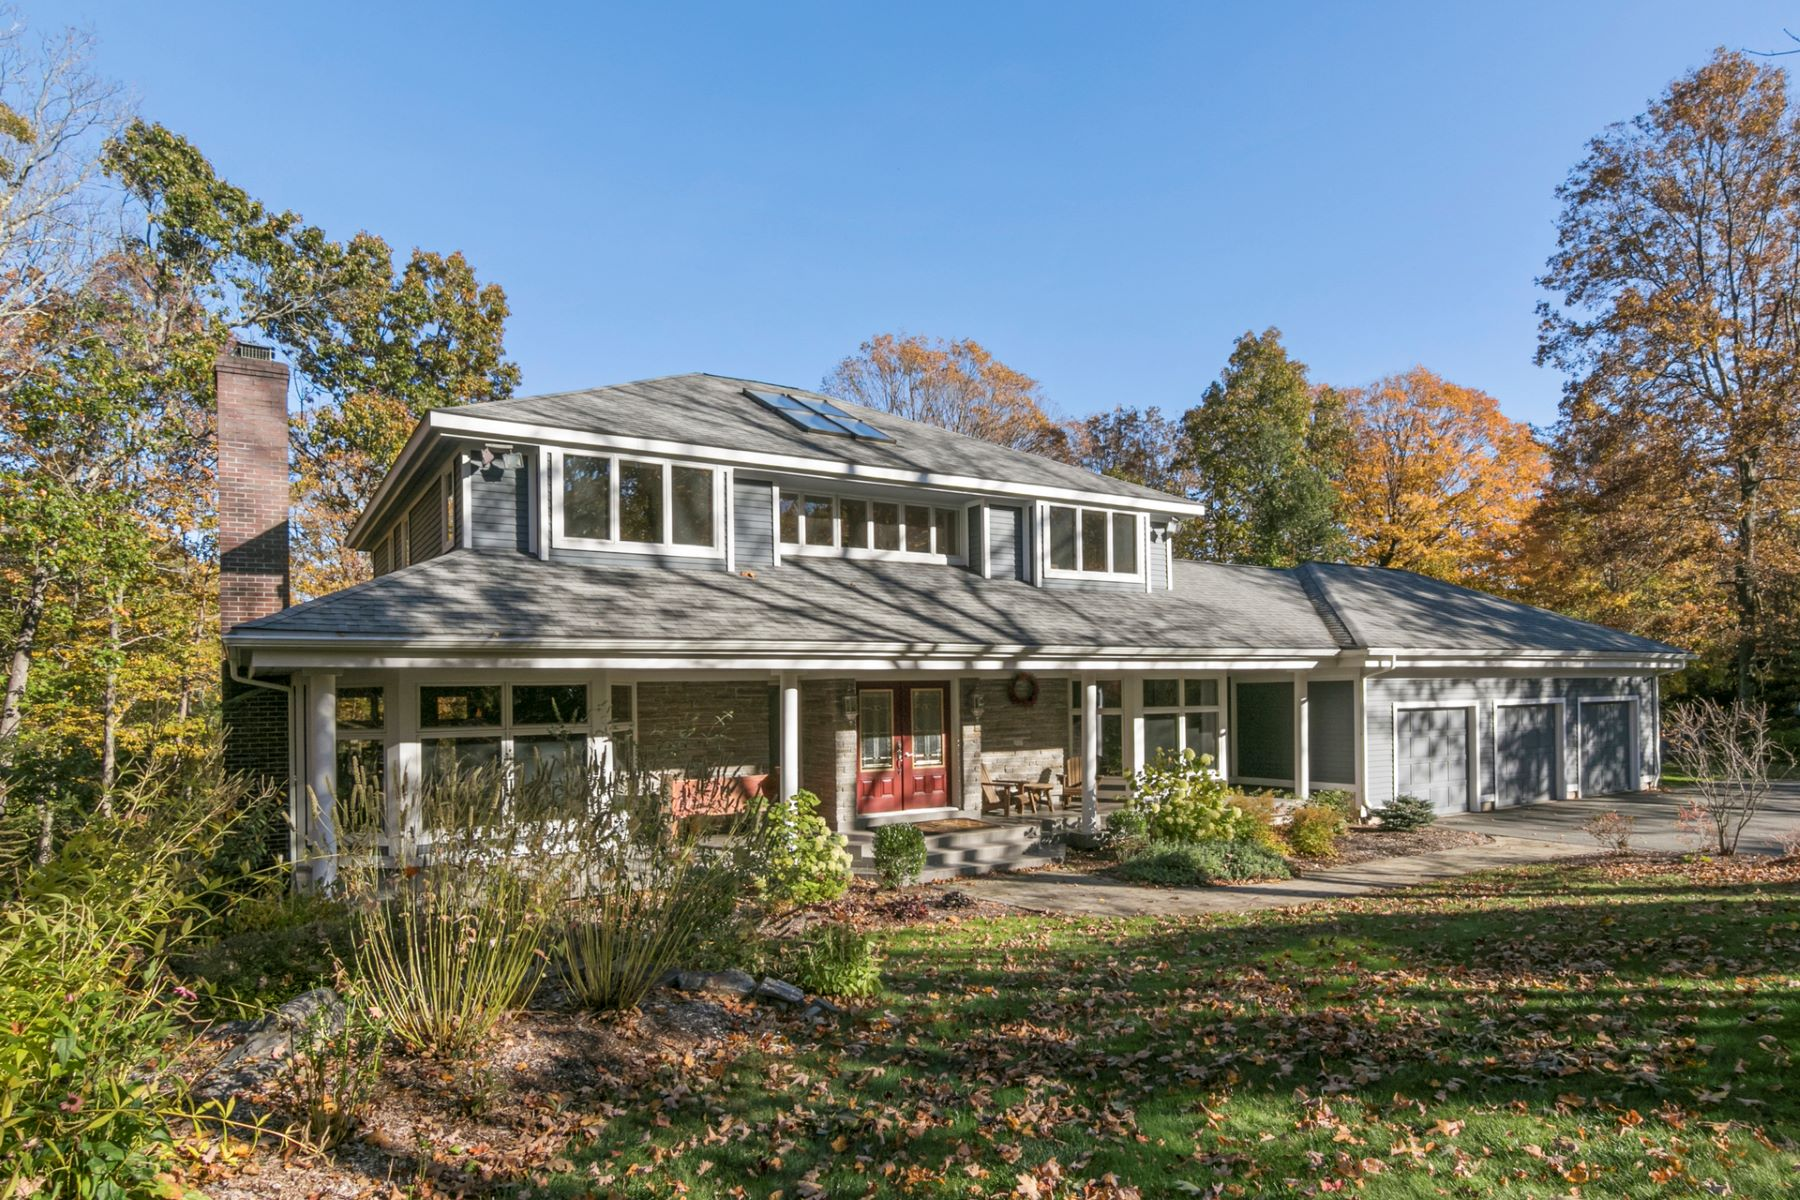 Single Family Homes for Sale at 340 Foot Hills Road Haddam, Connecticut 06441 United States